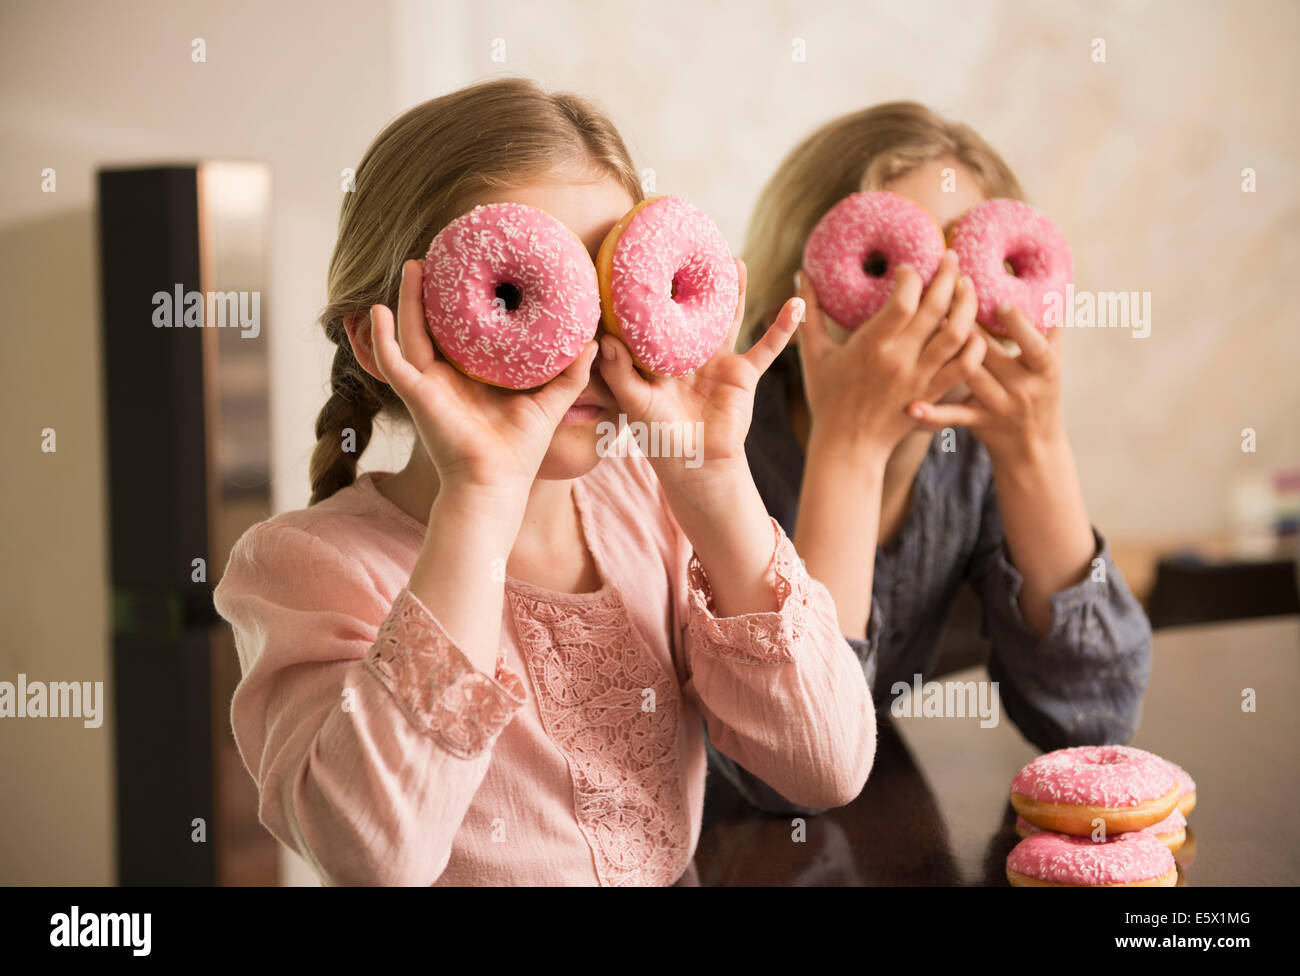 Portrait of two sisters with doughnut holes over their eyes - Stock Image